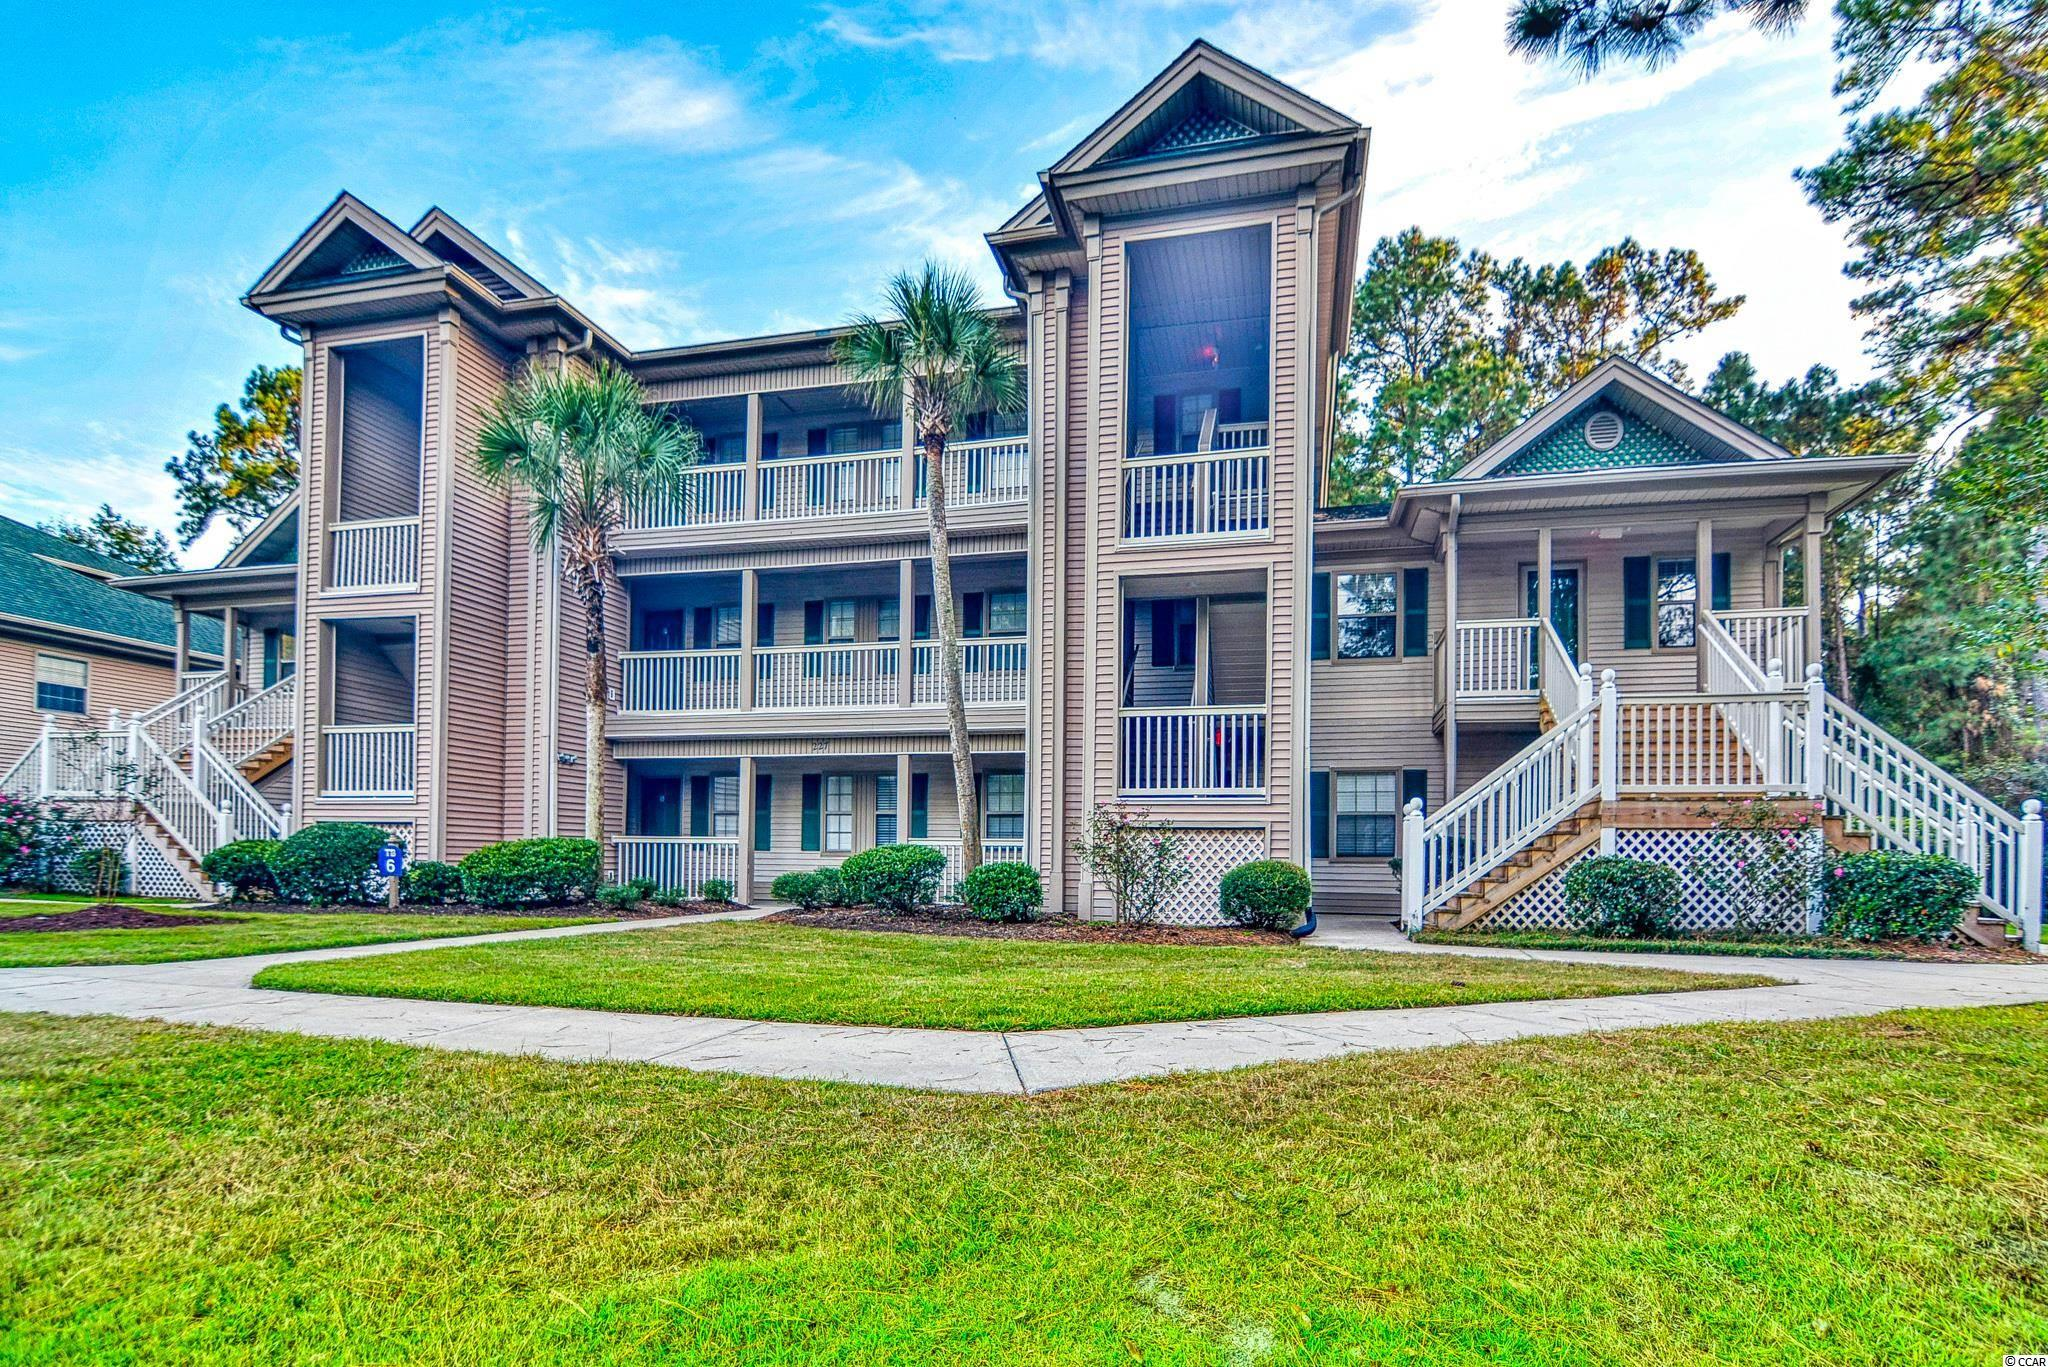 Fully furnished 2 bedroom, 2 bath end unit in the highly desirable True Blue neighborhood of Pawleys Island. Relax on your private screened porch overlooking True Blue Golf Course. Centrally located to all things in Pawleys Island, including the sandy beaches, top notch golf courses, award winning restaurants and a variety of local shops. Enjoy the community pools and tennis courts as you immerse yourself in the Lowcountry Lifestyle. A day trip to Charleston is well worth the time, or explore HistoricGeorgetown just minutes away. Convenient to the Myrtle Beach International Airport and all the live shows and attractions of one of the biggest tourist attractions on the east coast, yet far enough away where the living is easy and serenity is attainable. Use as your primary or second home, with options to rent as a vacation property for extra income.